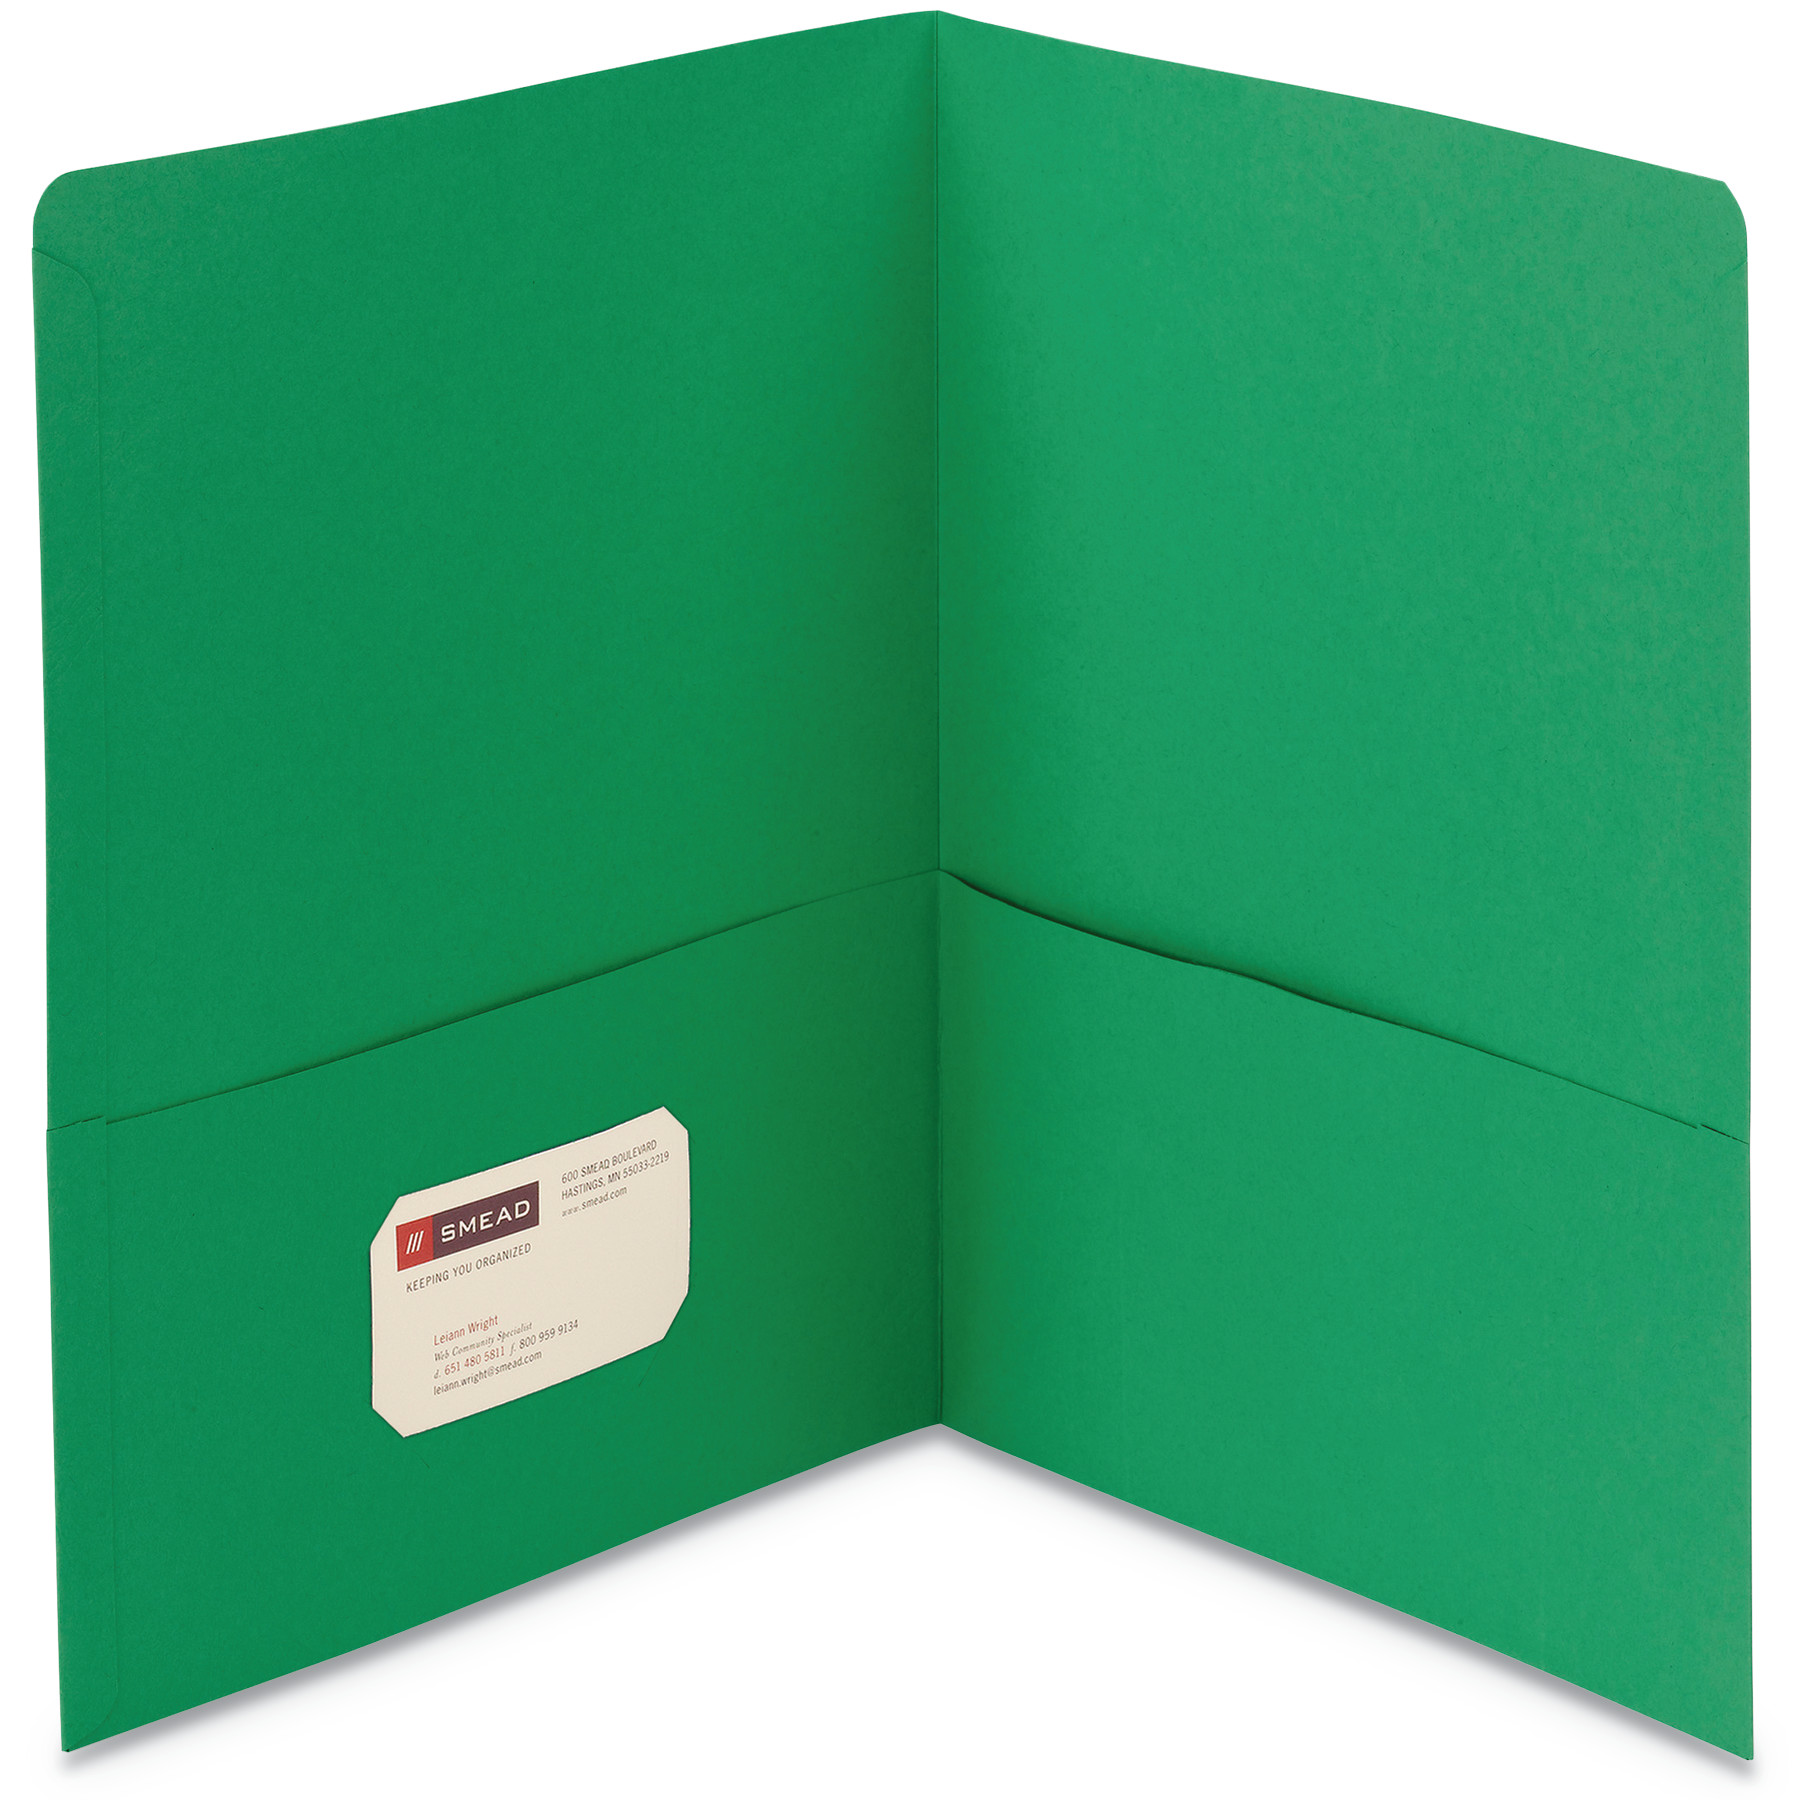 Smead Two-Pocket Folder, Textured Paper, Green, 25/Box -SMD87855